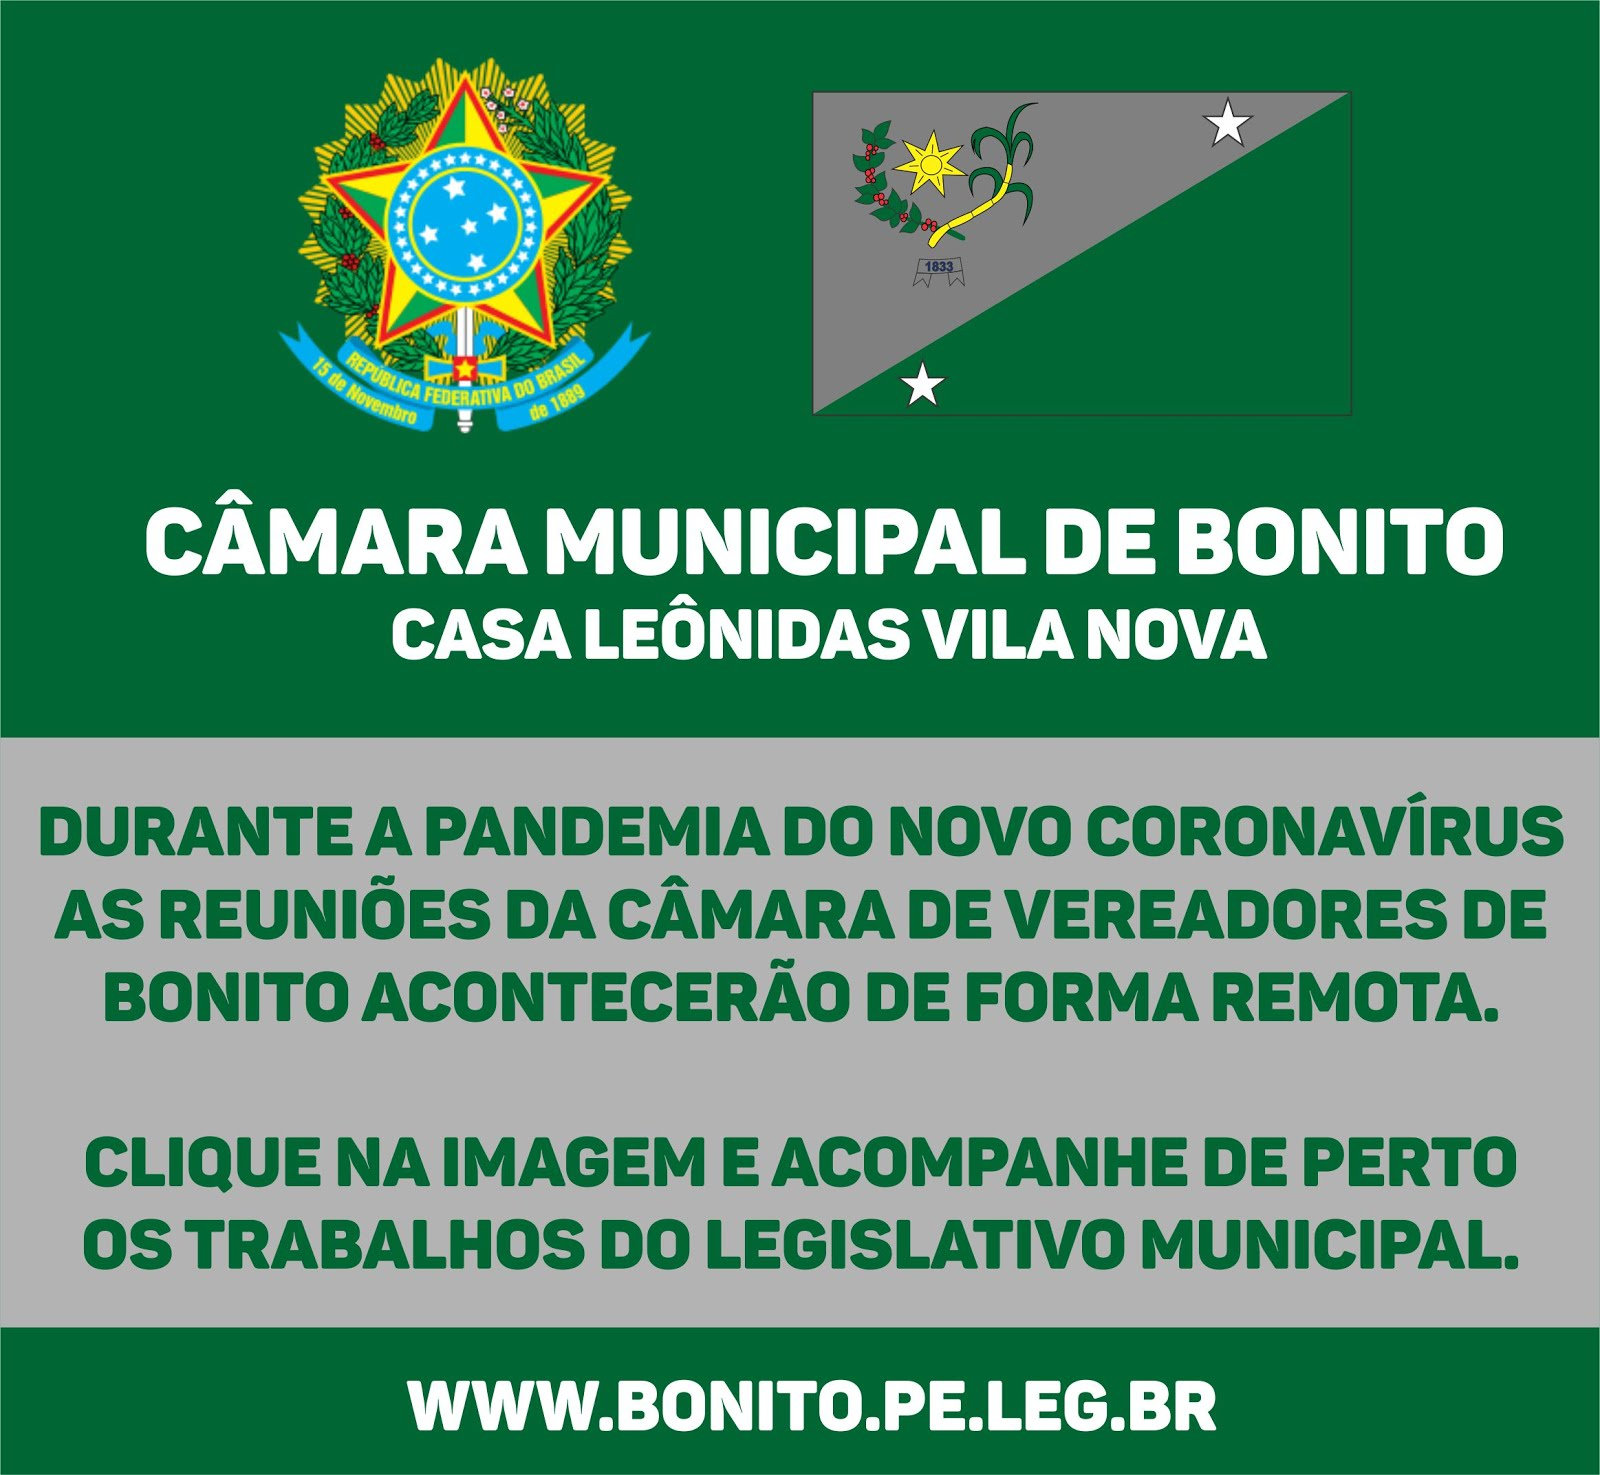 Câmara Municipal do Bonito